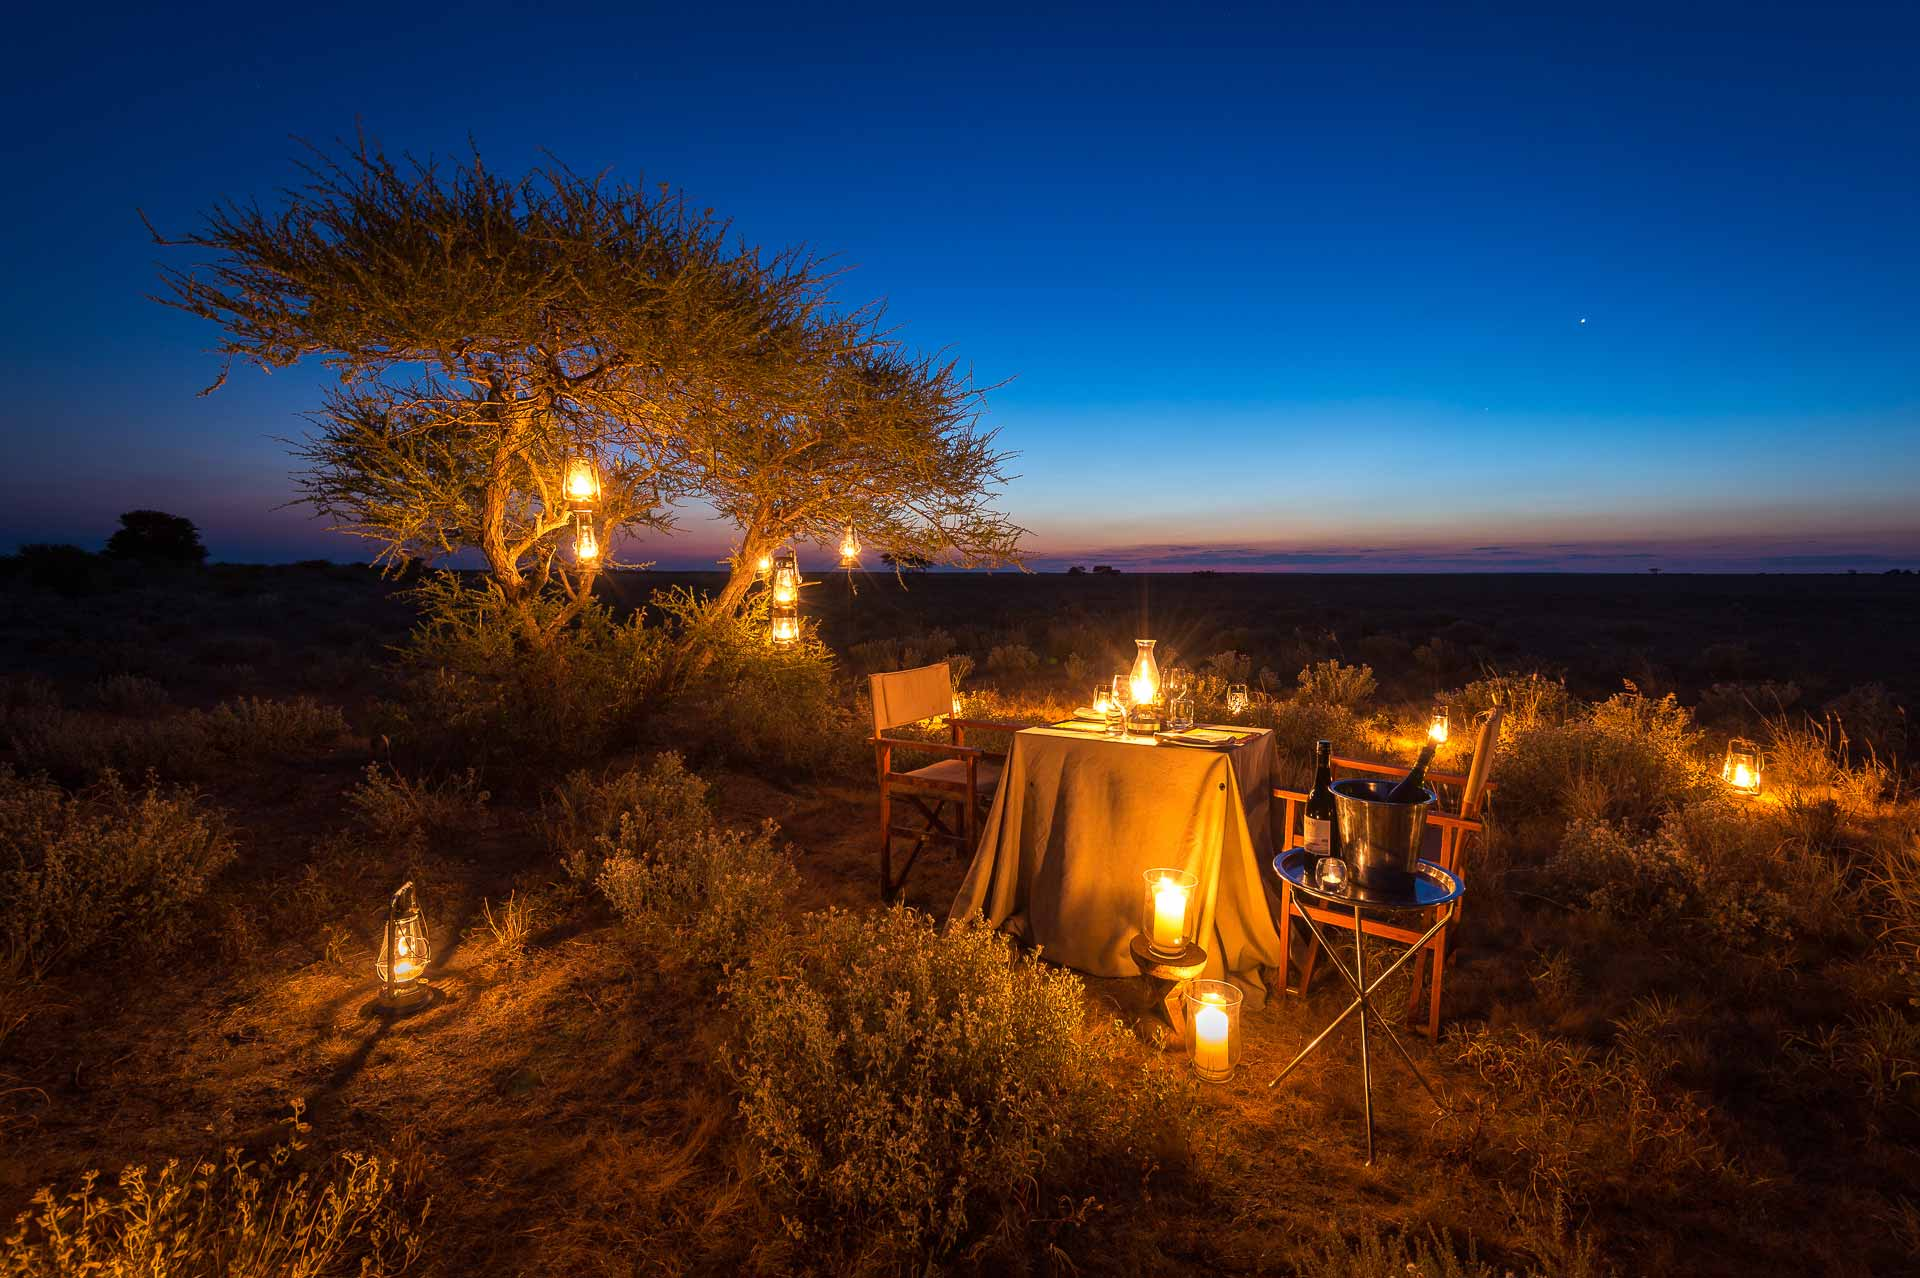 enkosi-africa-safari-botswana-kalahari-plains-camp-wilderness-guest-area-exterior-romantic-diner